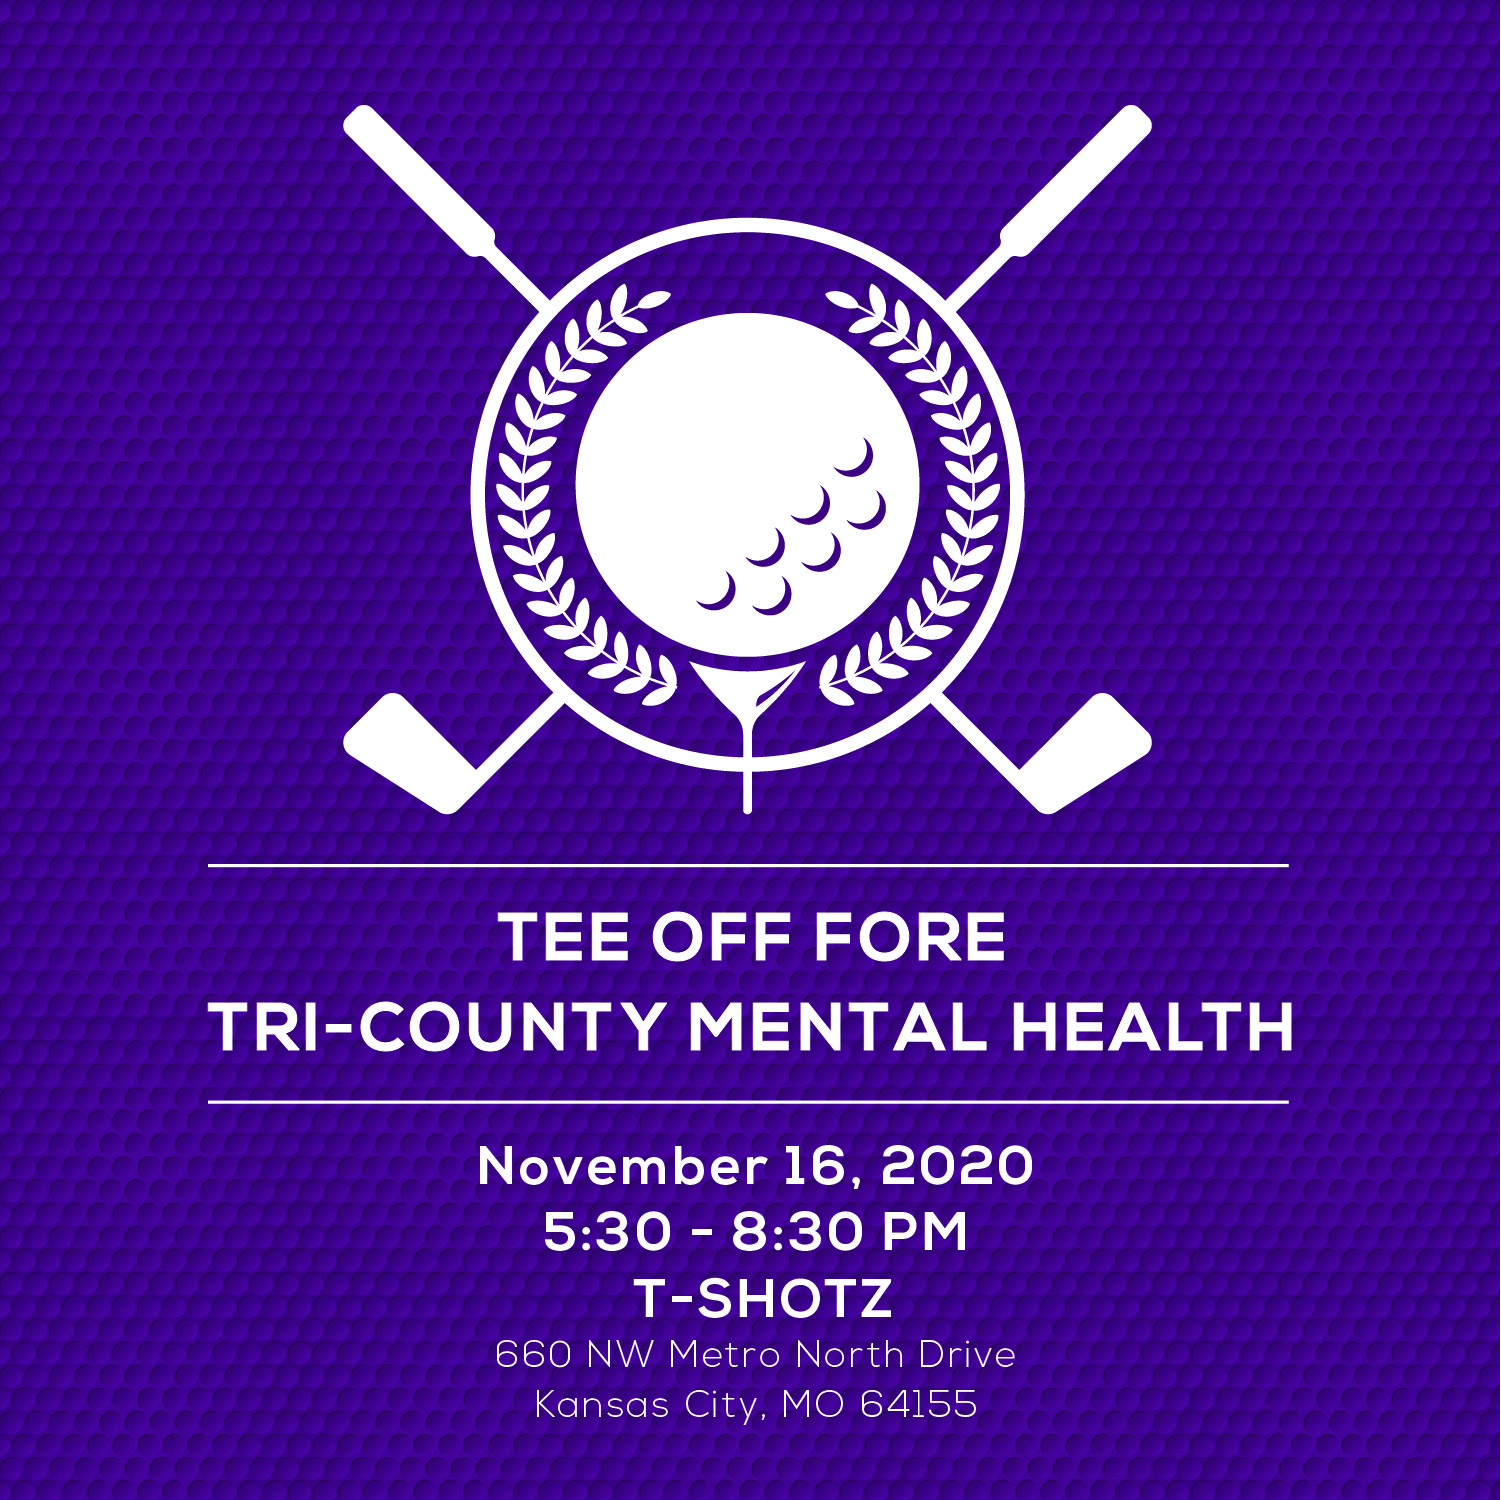 T-Shotz fundraiser for Tri-County